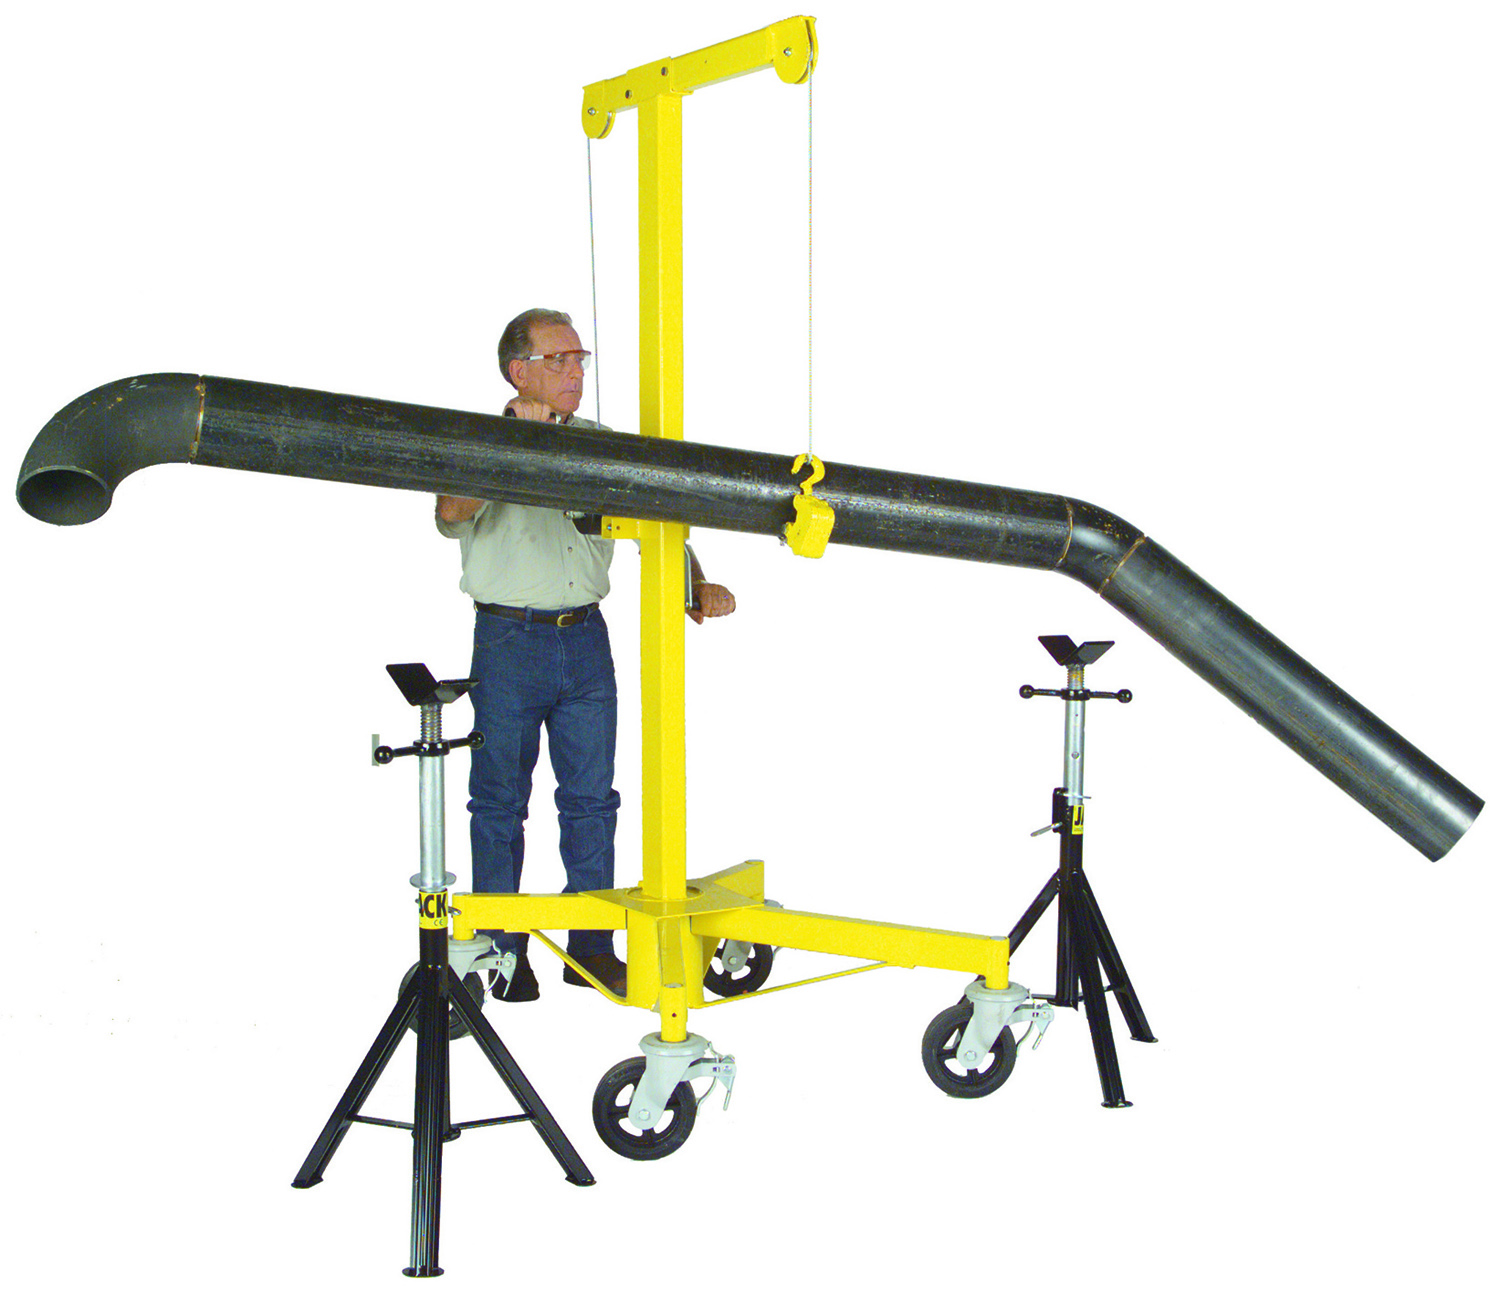 Rinker Materials Concrete Pipe Handling : Mechanical plumbing pipe dollies lifts fabmate™ hoist